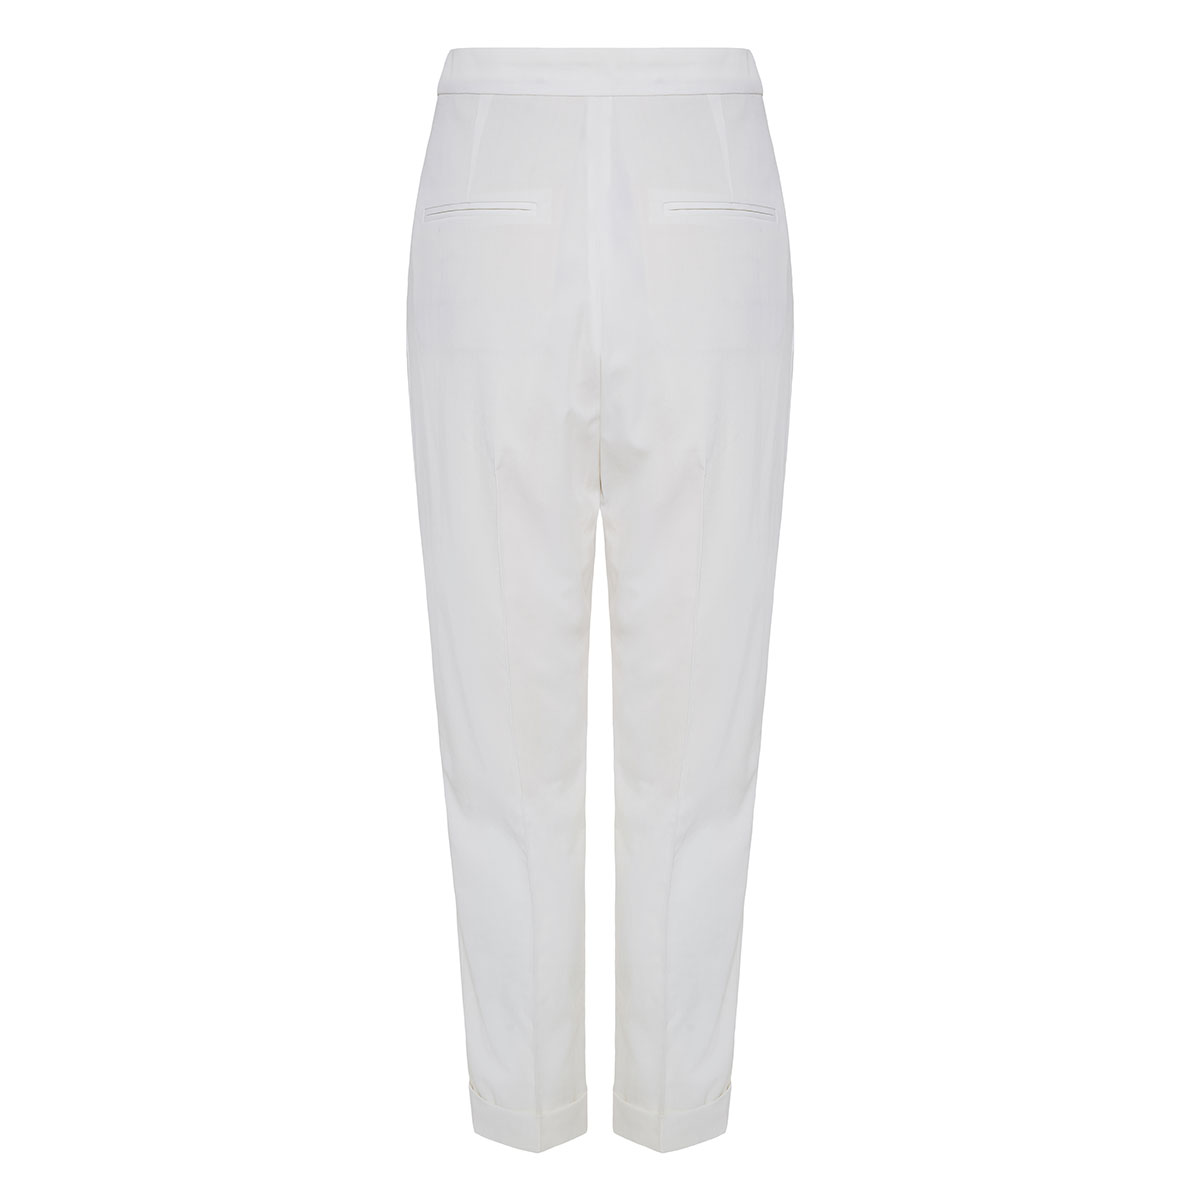 High-waist wool tailored trousers